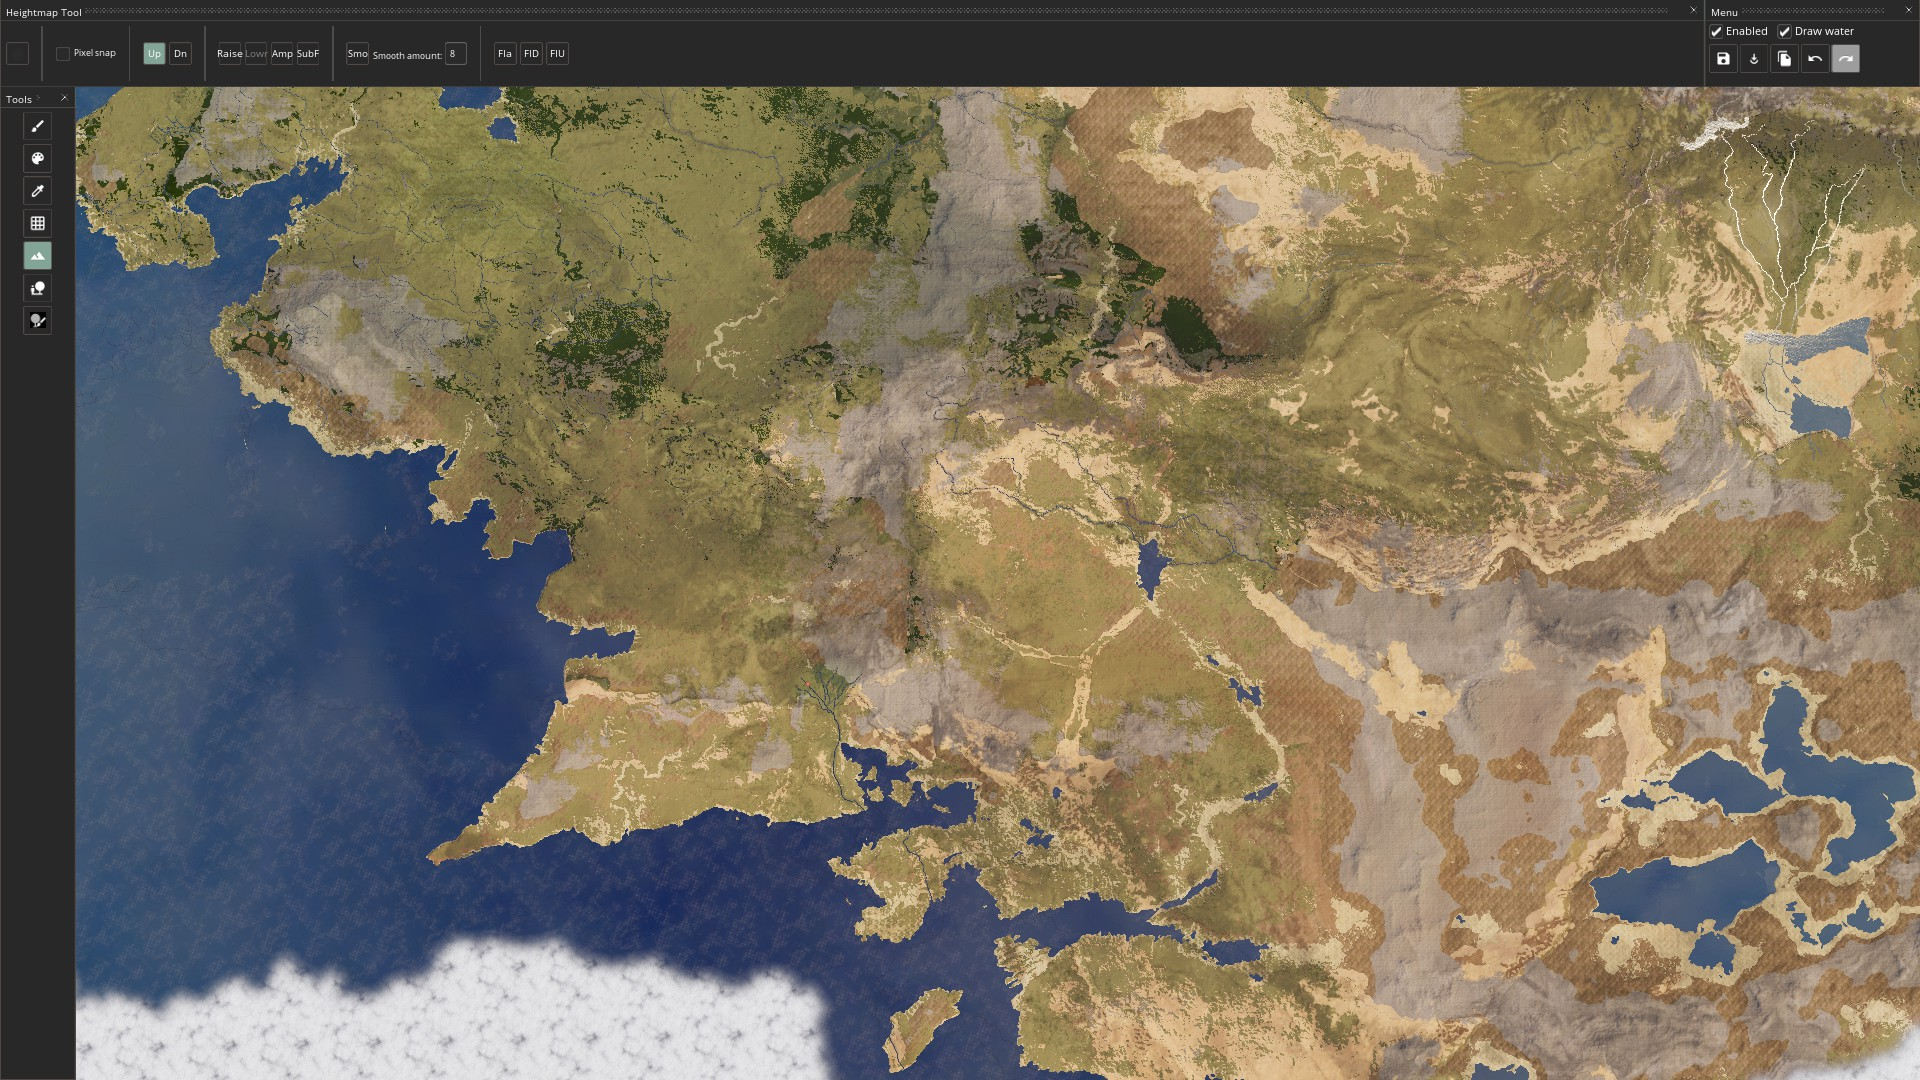 1046130-imperator-rome-stredozeme-1920x1080 Game Od Thrones Map on kingdoms in anglo saxon england map, forgotten realms map, movie map, defiance game map, mac map, ice and fire world map, ascension map, walking dead map, fire and ice book map,